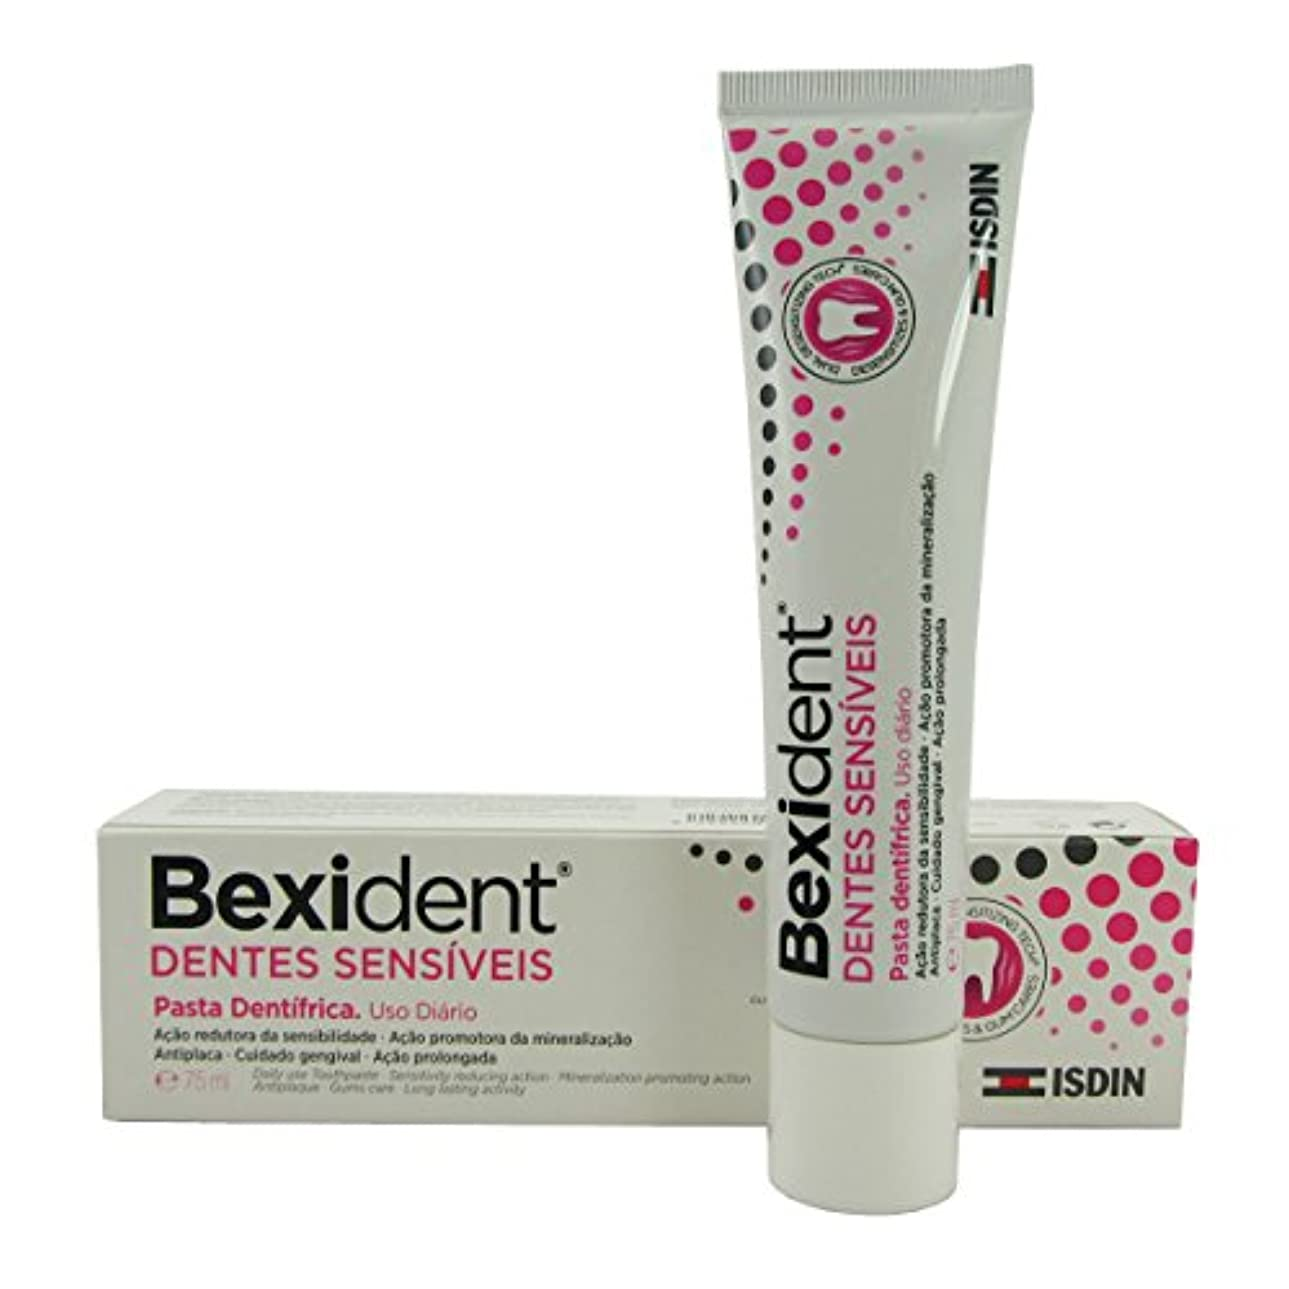 Bexident Sensitive Teeth Toothpaste 75ml [並行輸入品]